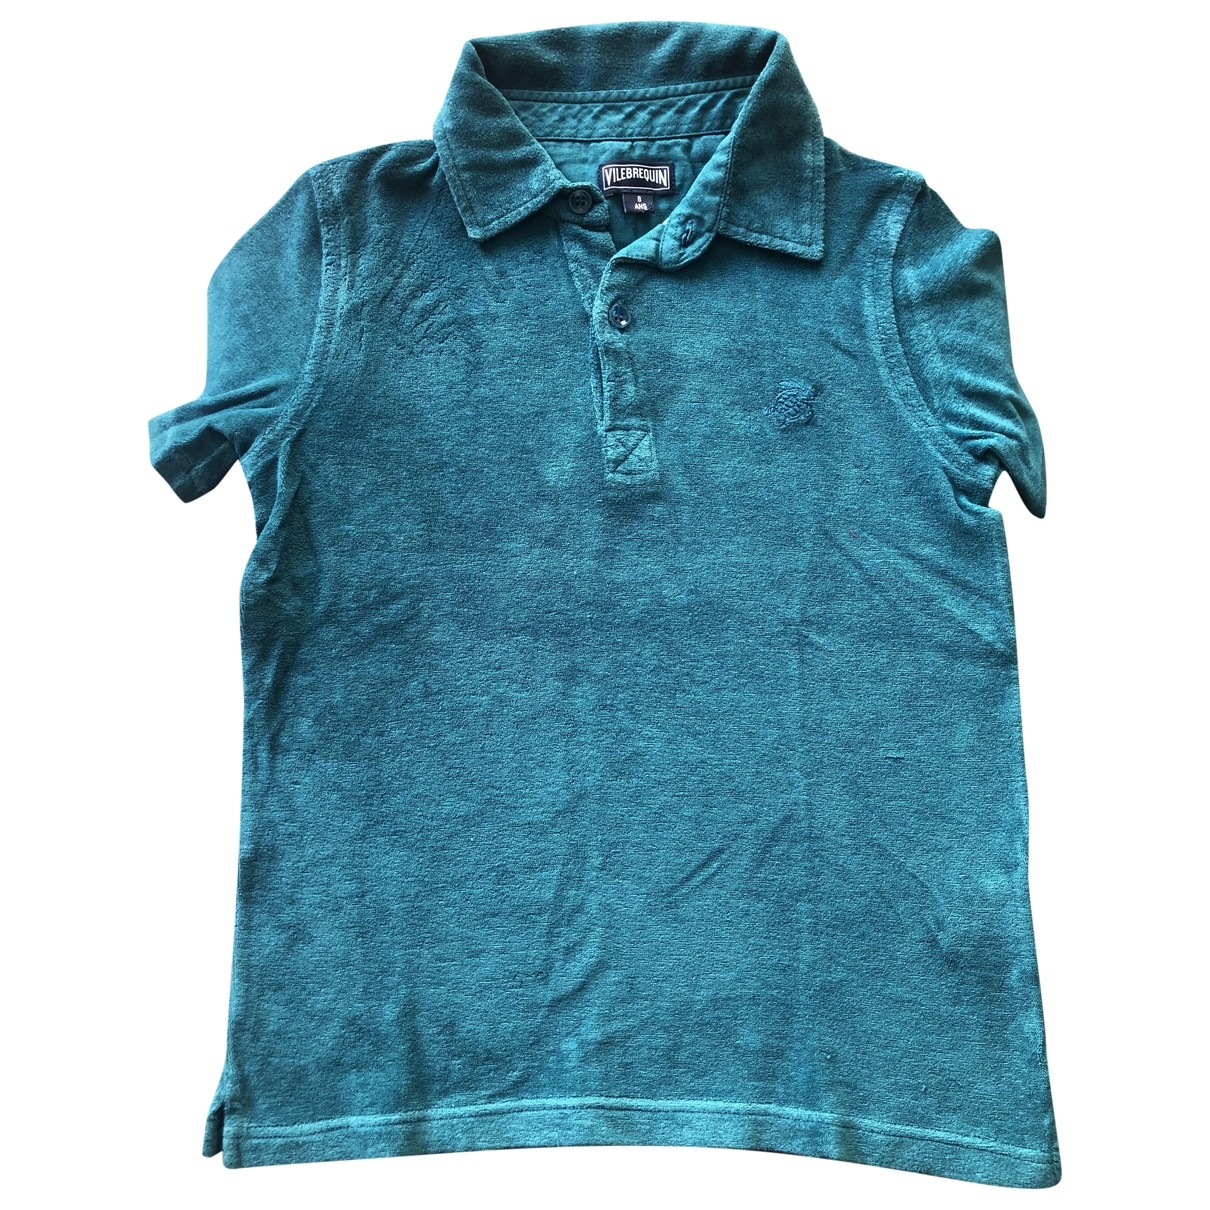 Vilebrequin \N Blue Cotton  top for Kids 8 years - up to 128cm FR